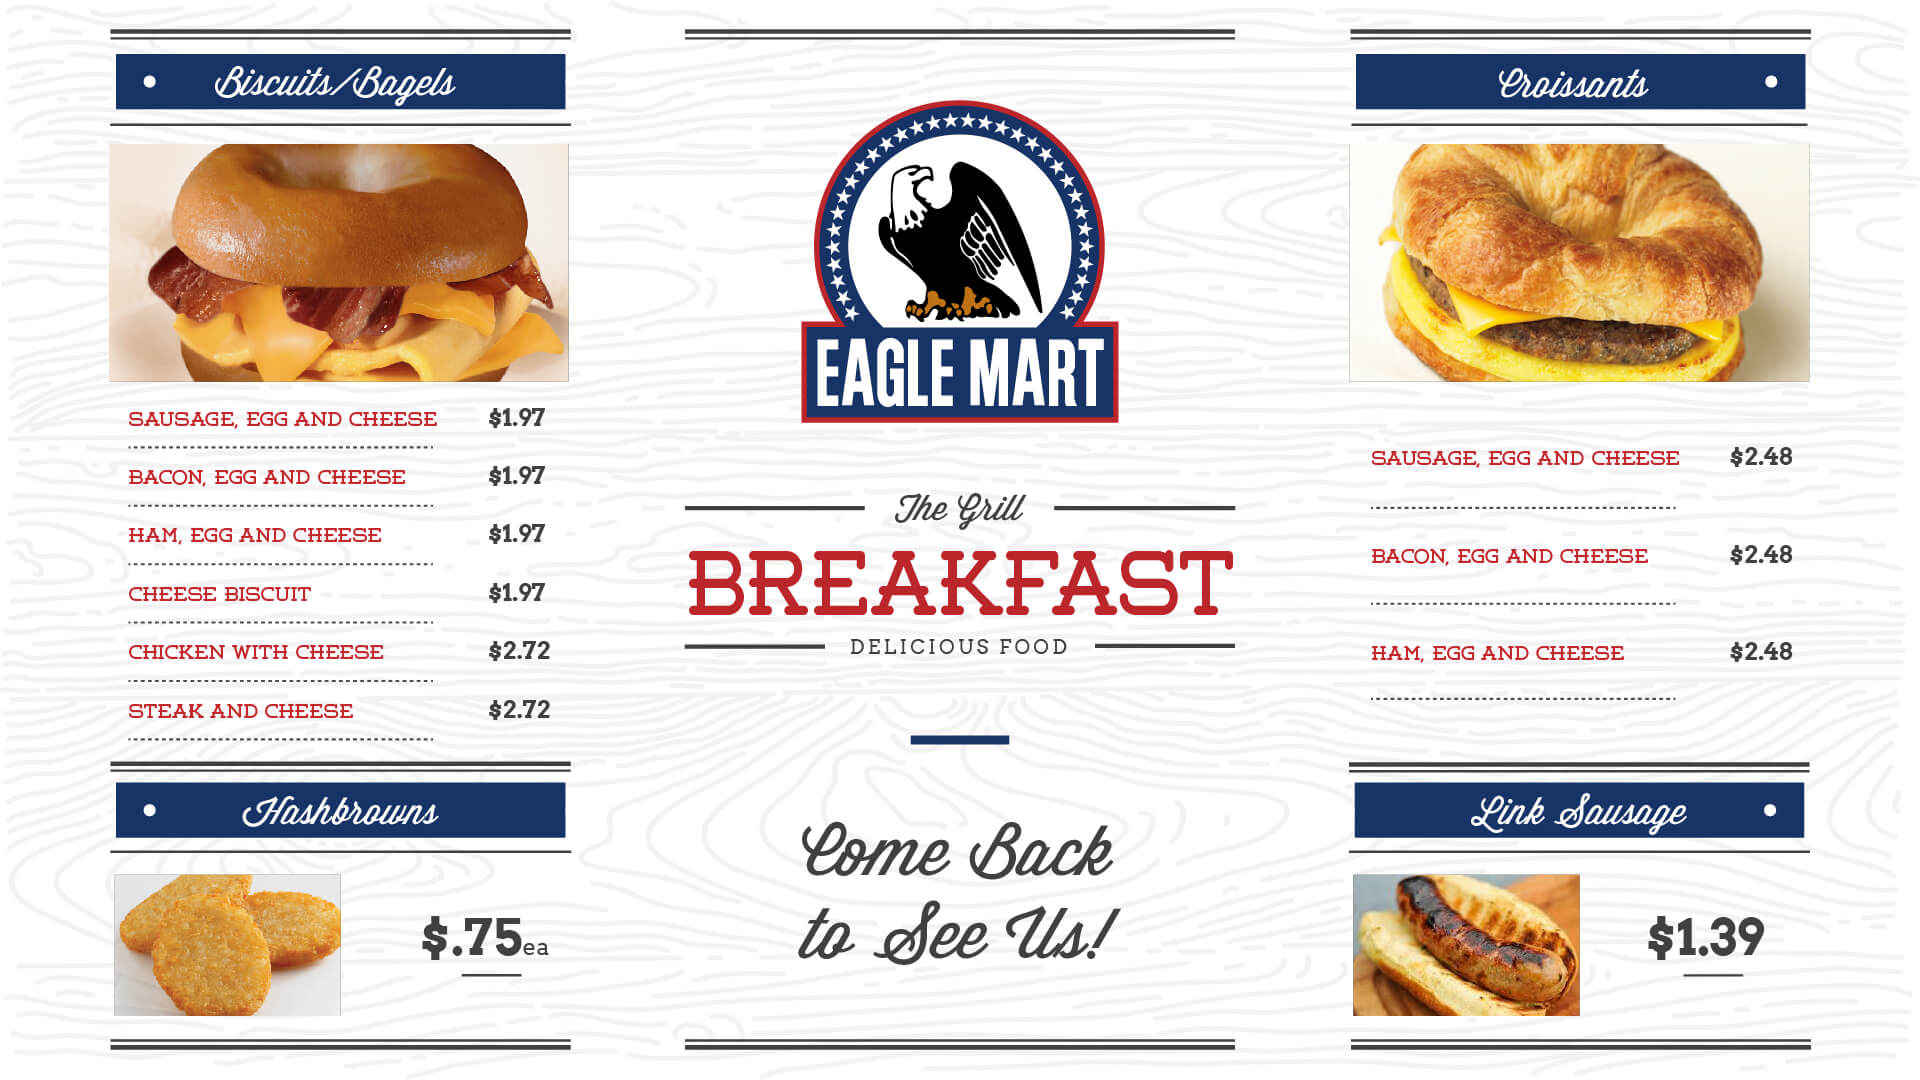 Eagle Mart Breakfast Menu